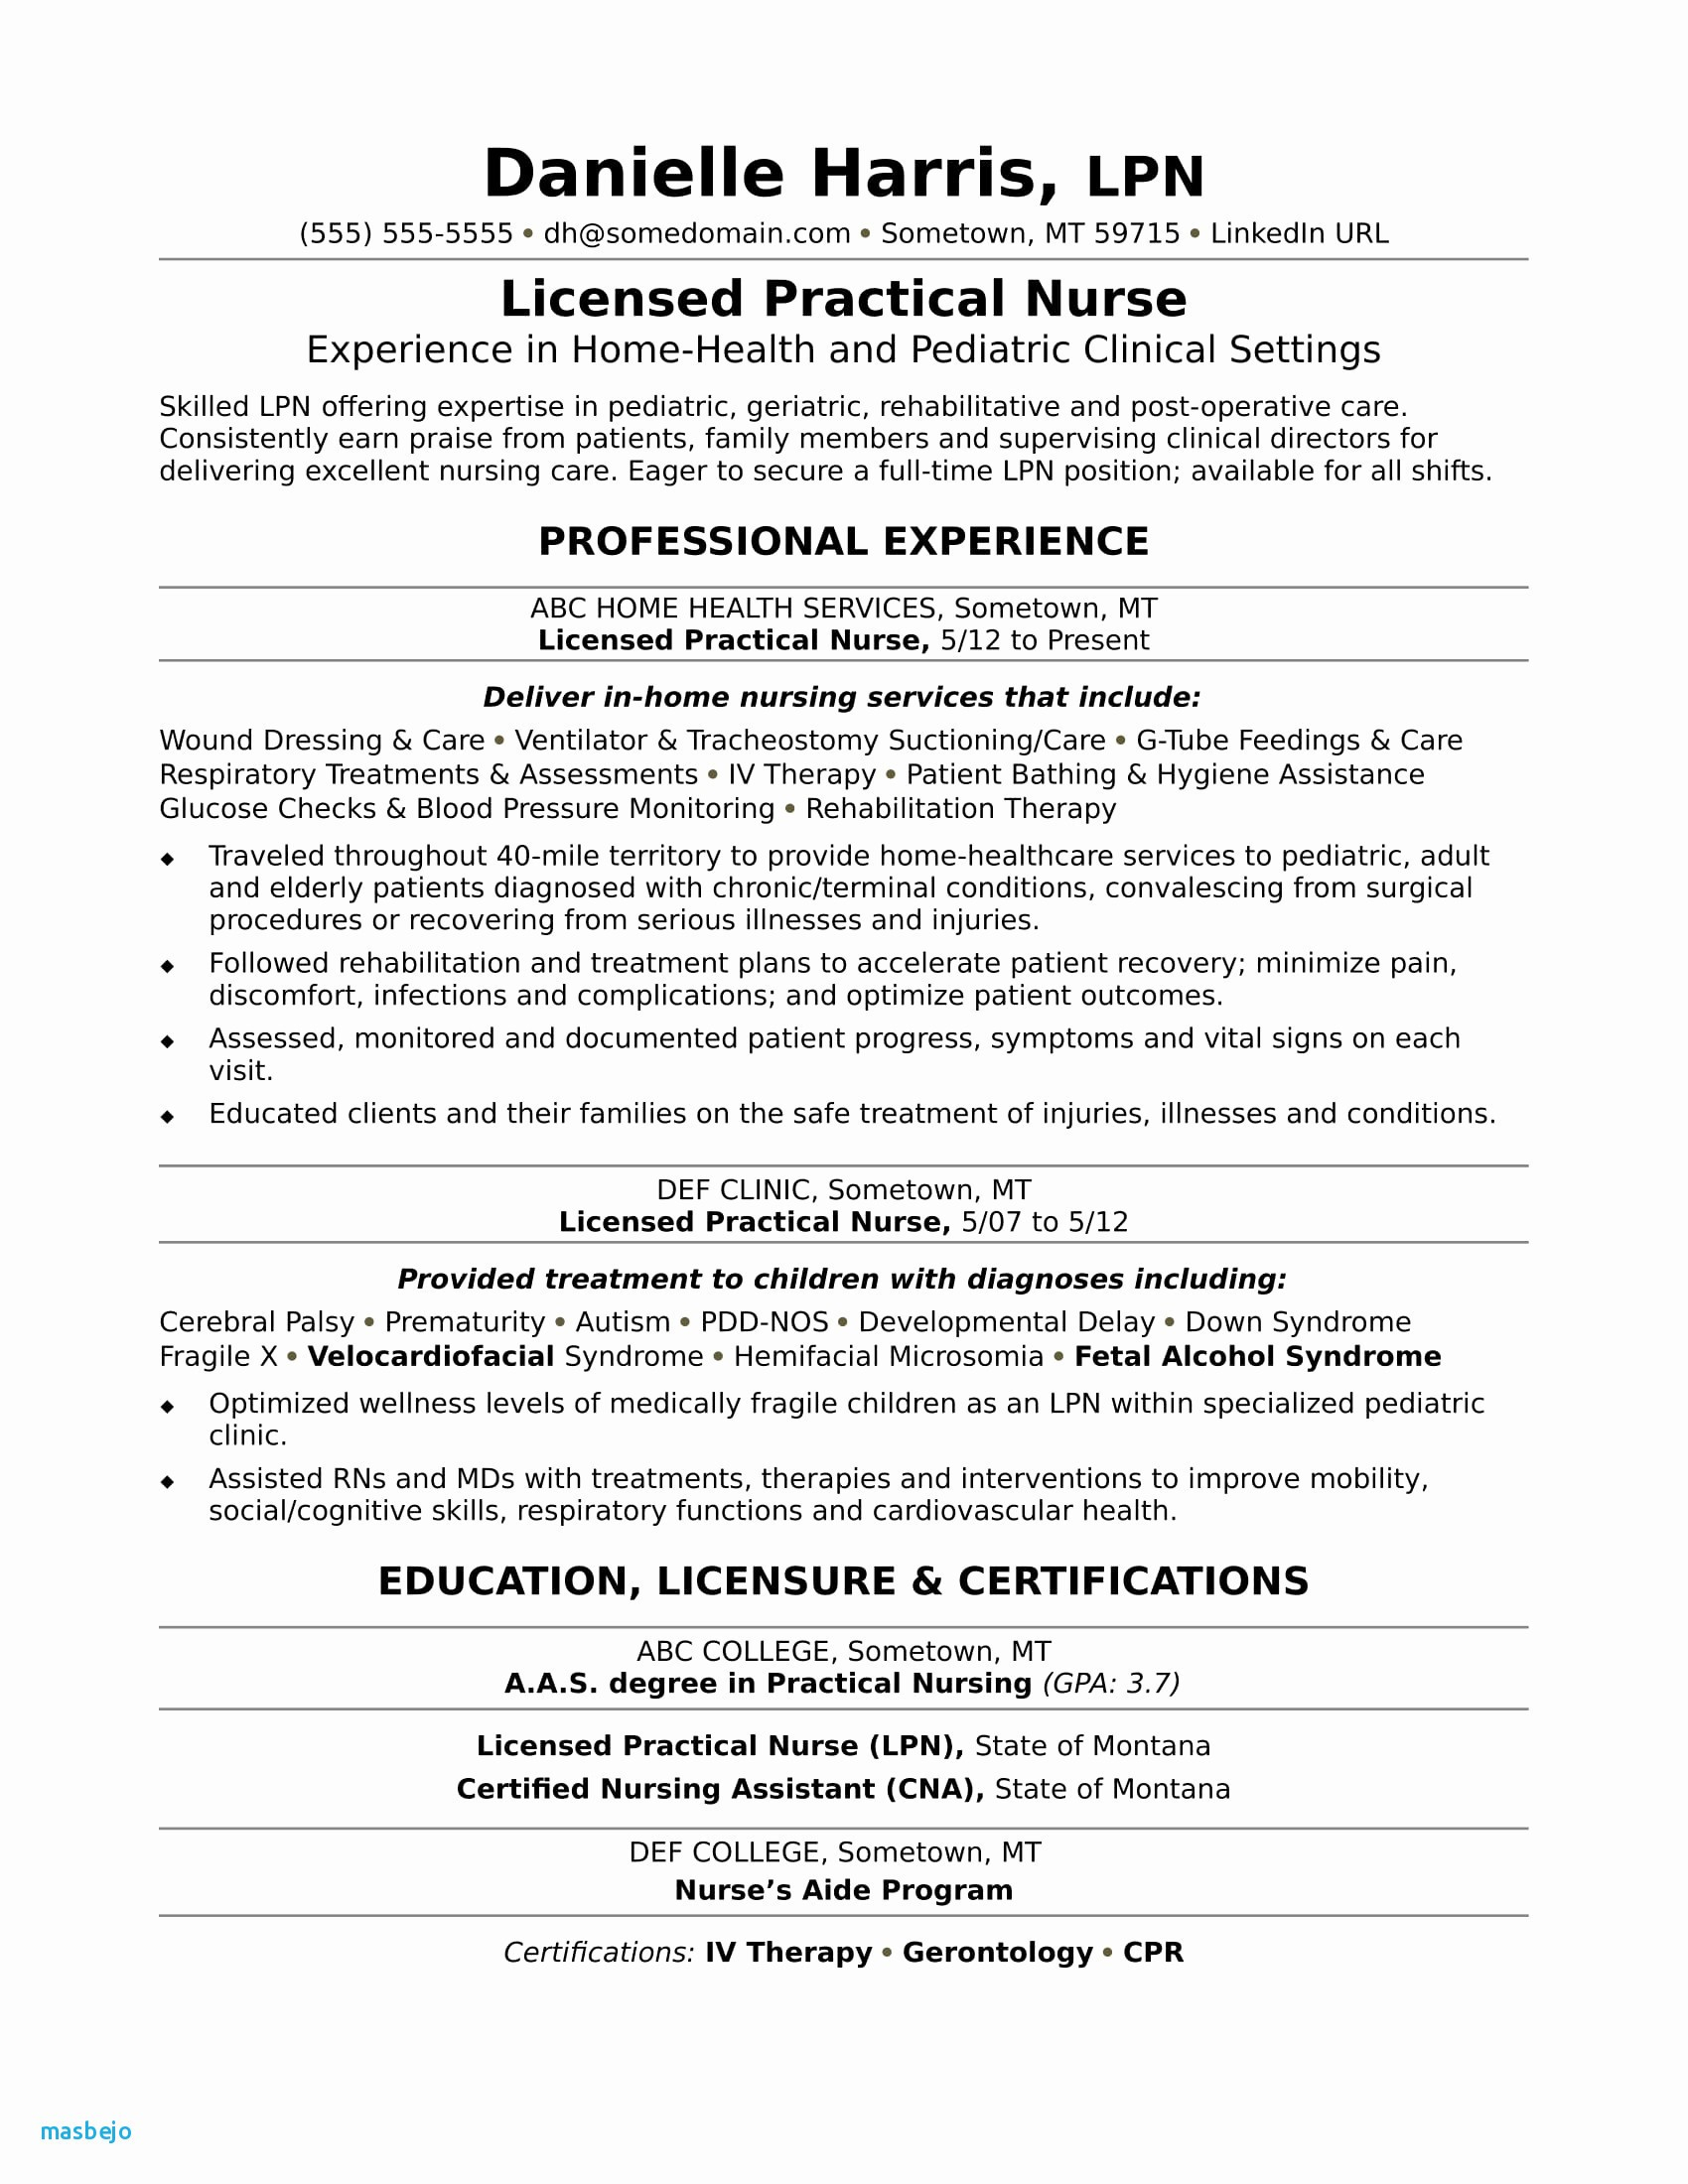 Nursing Resume Examples 2018 - Sample Resume for A New Registered Nurse Resume Resume Examples